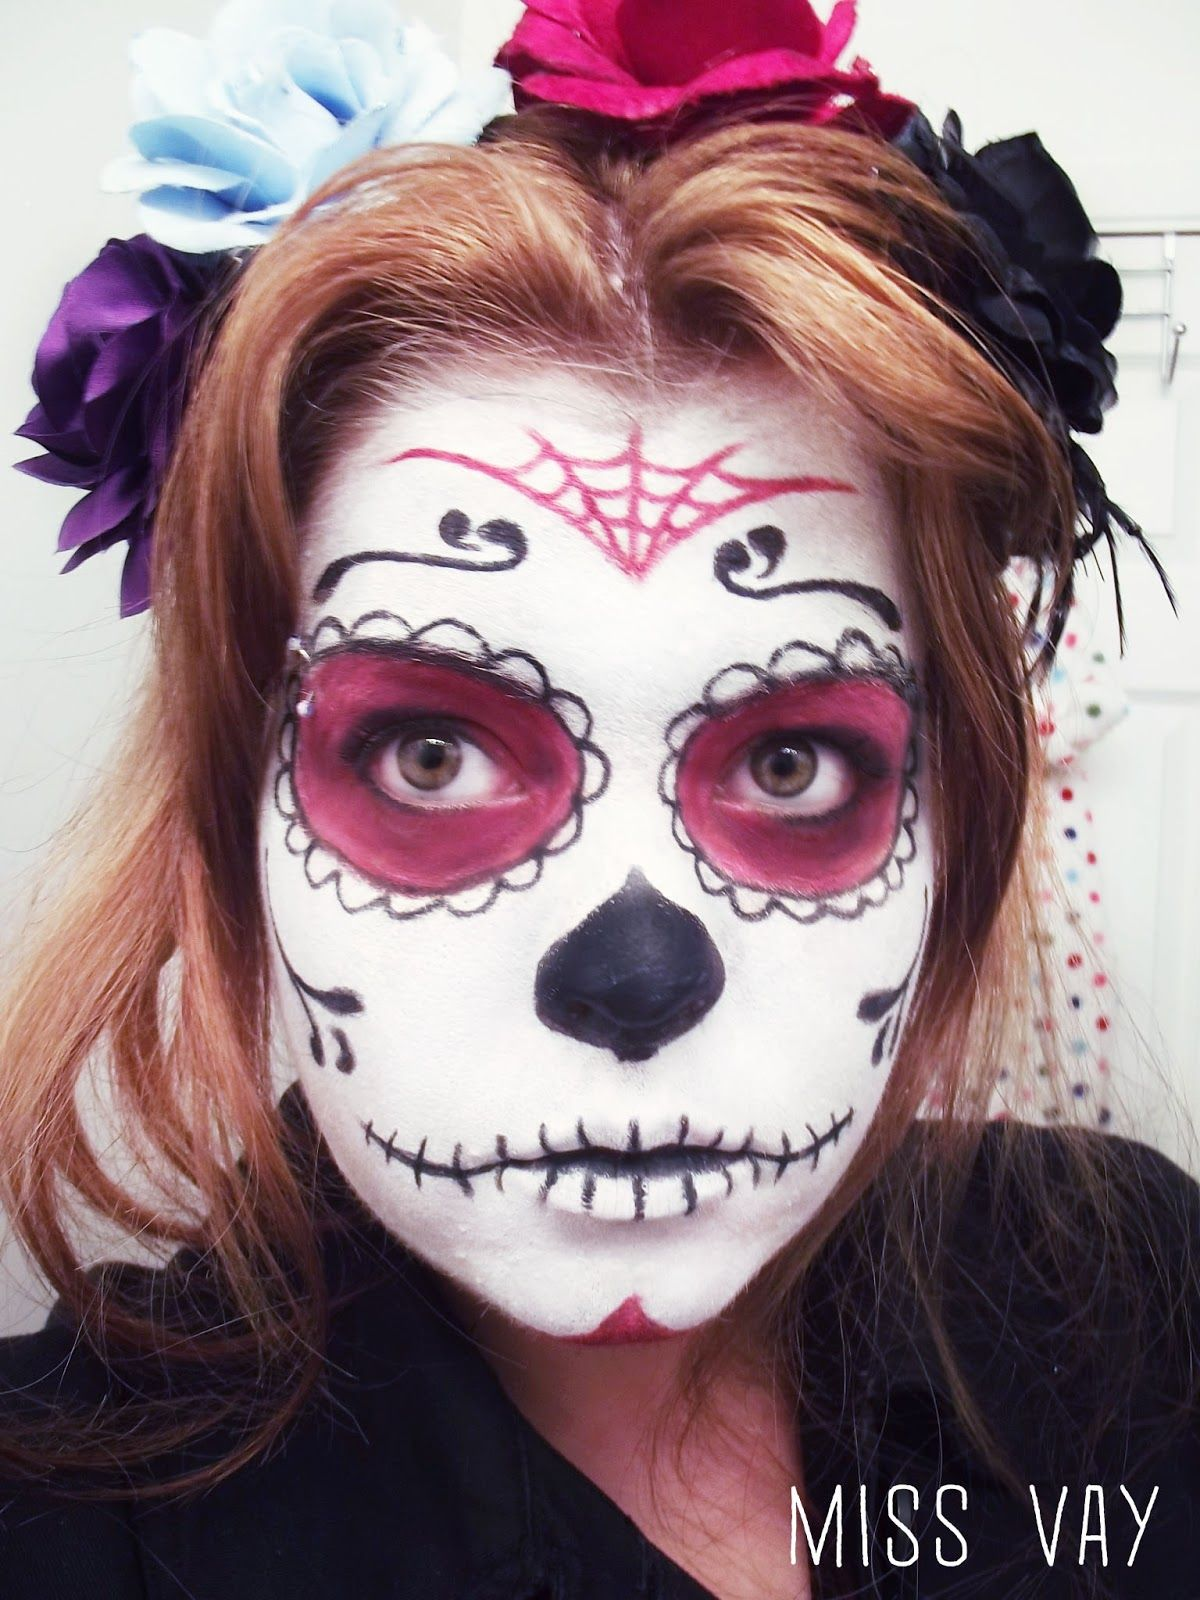 Tete de mort mexicaine maquillage recherche google maquillage mexicain pinterest - Maquillage mexicain facile ...